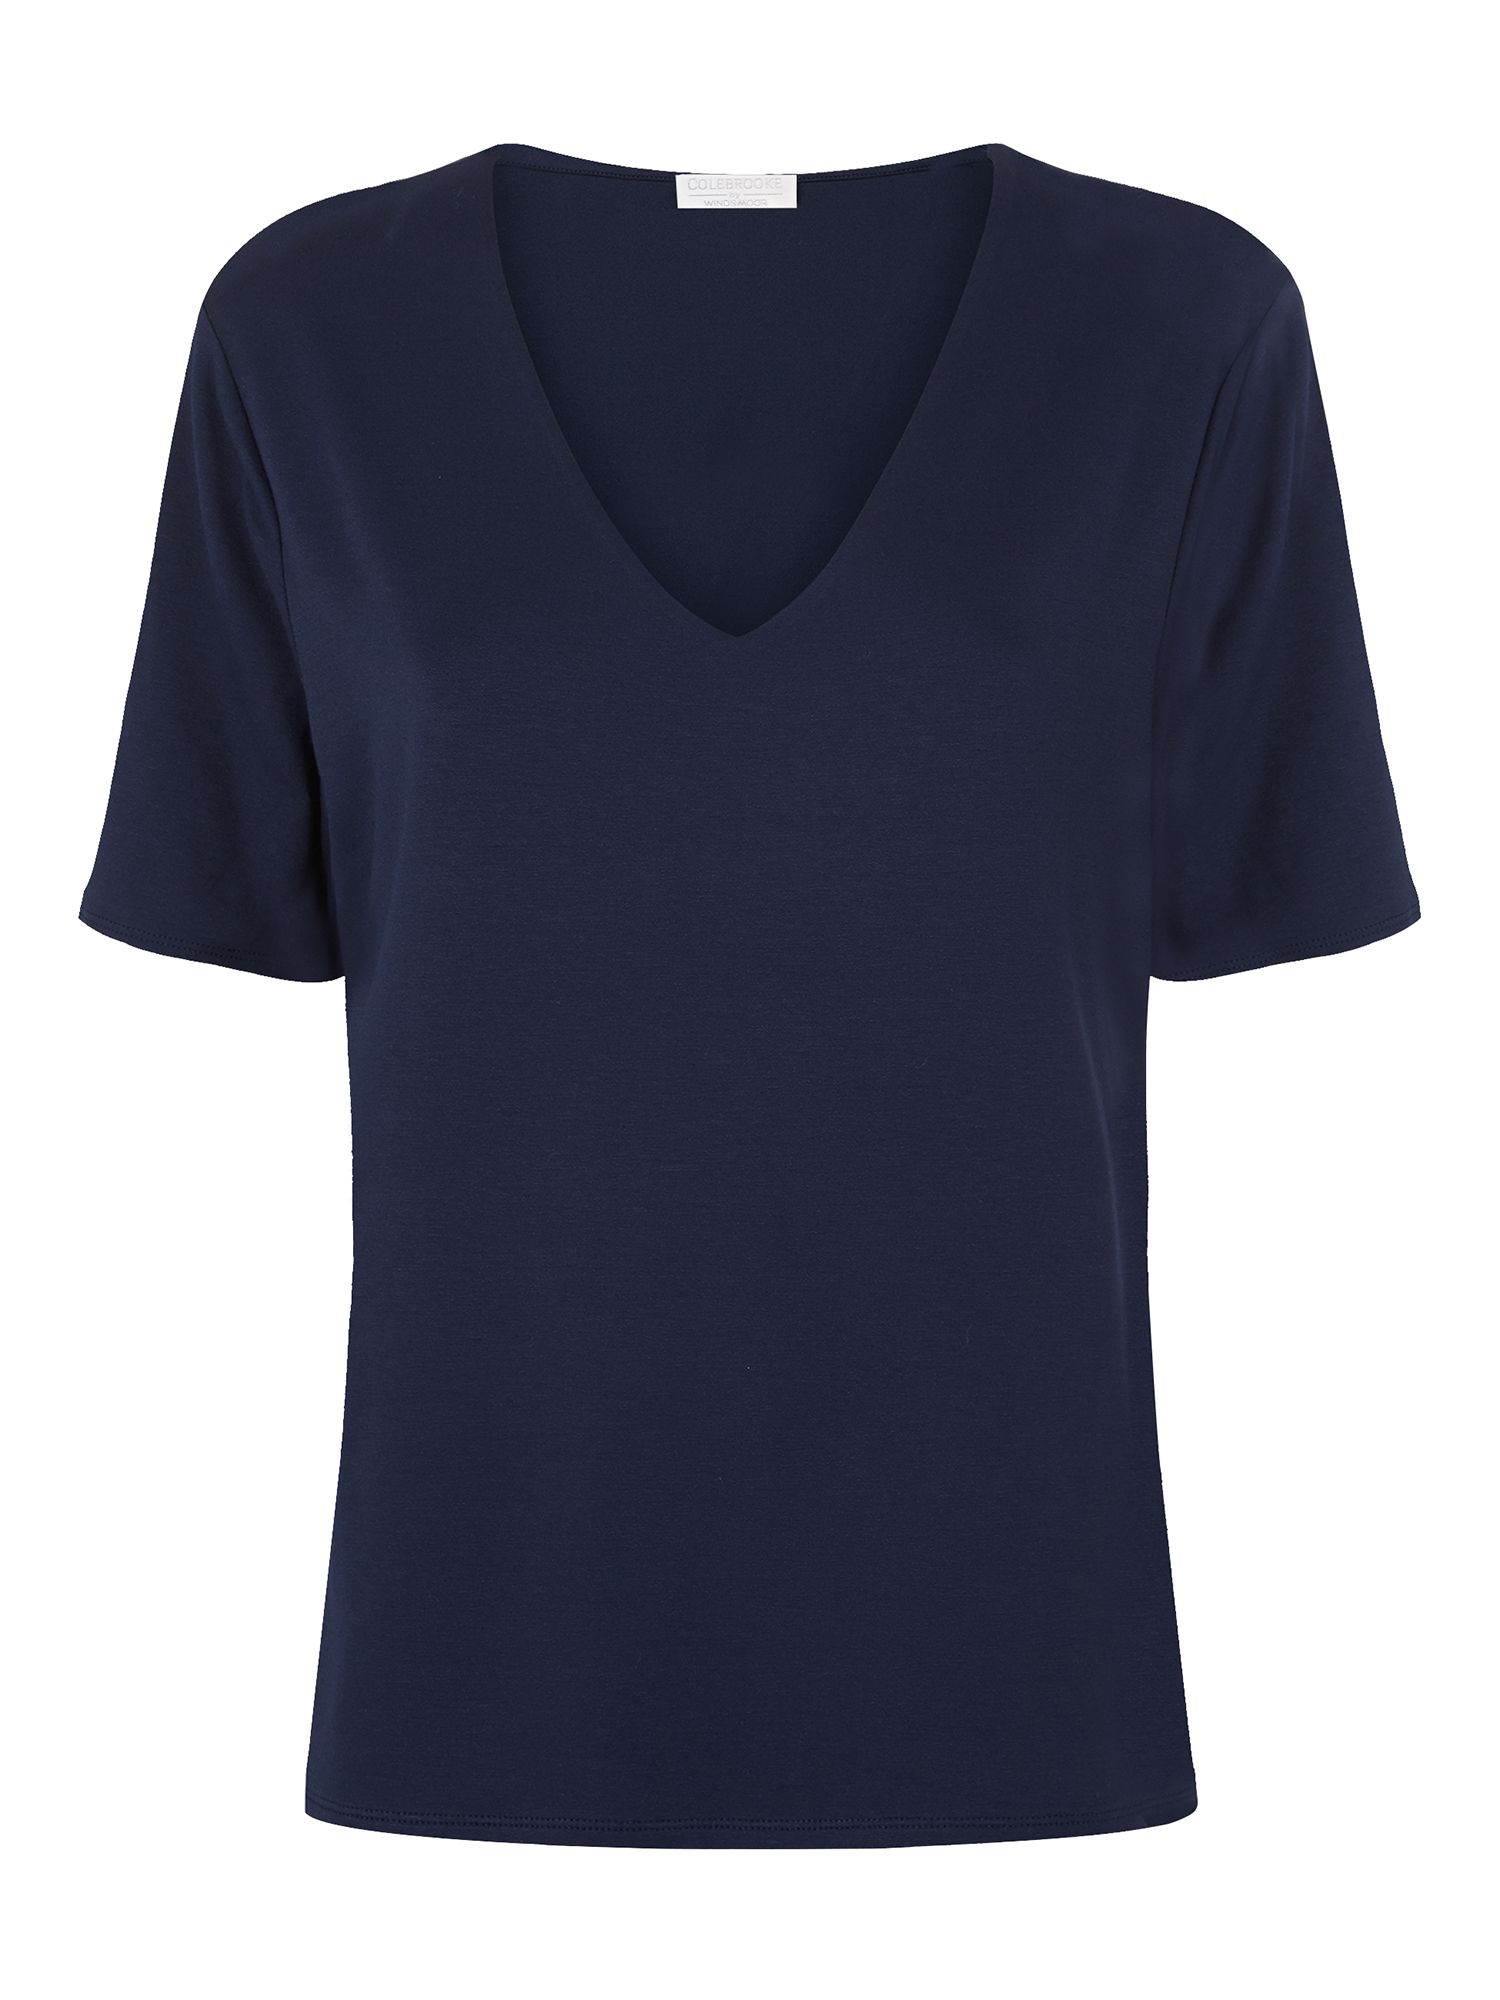 Windsmoor Navy V Neck Basic 3/4 Sleeve, Navy